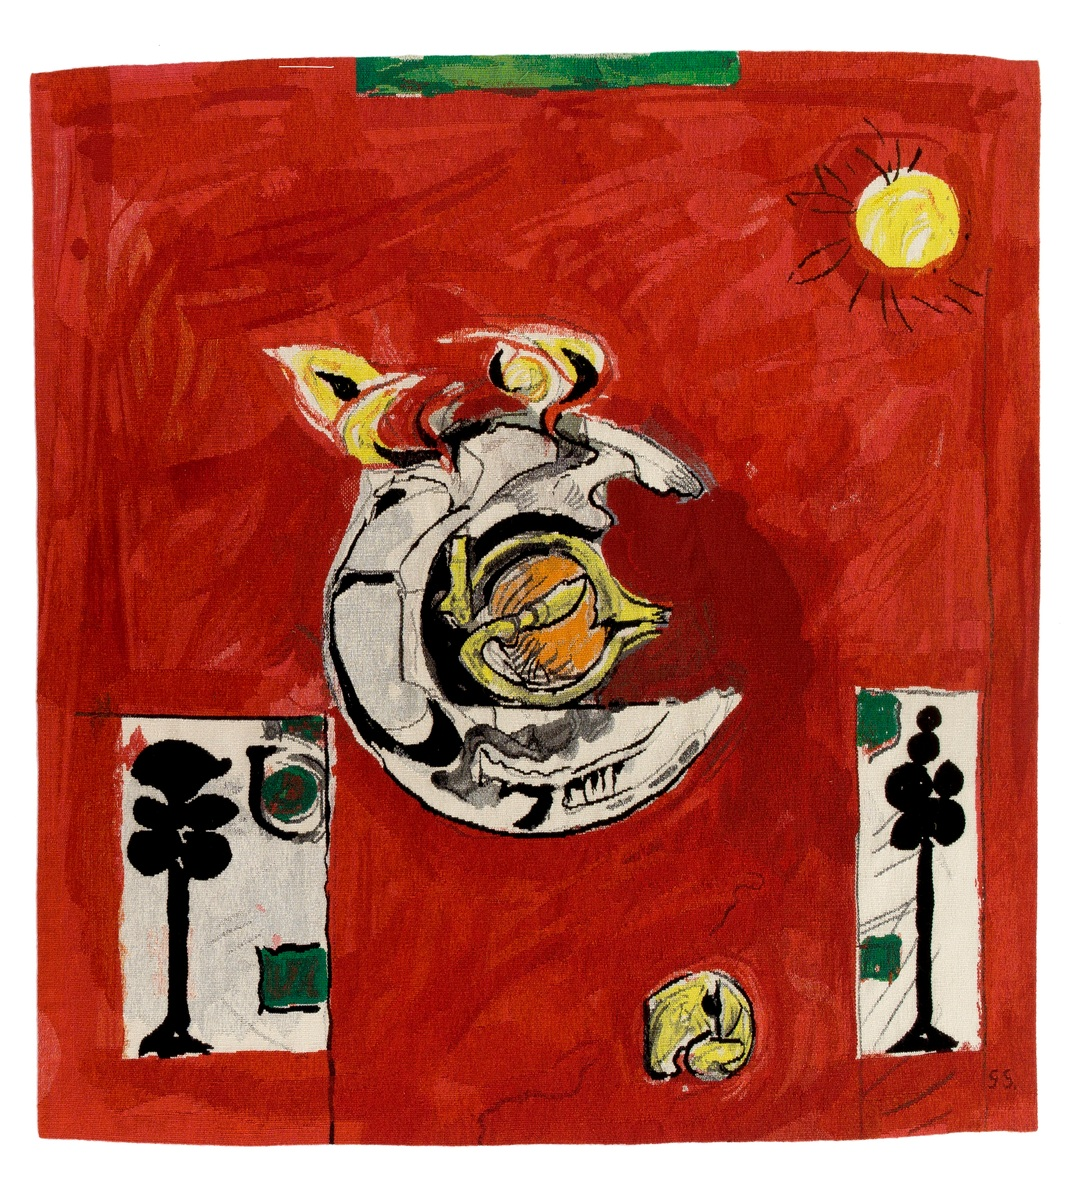 Graham Sutherland's Emblem on Red